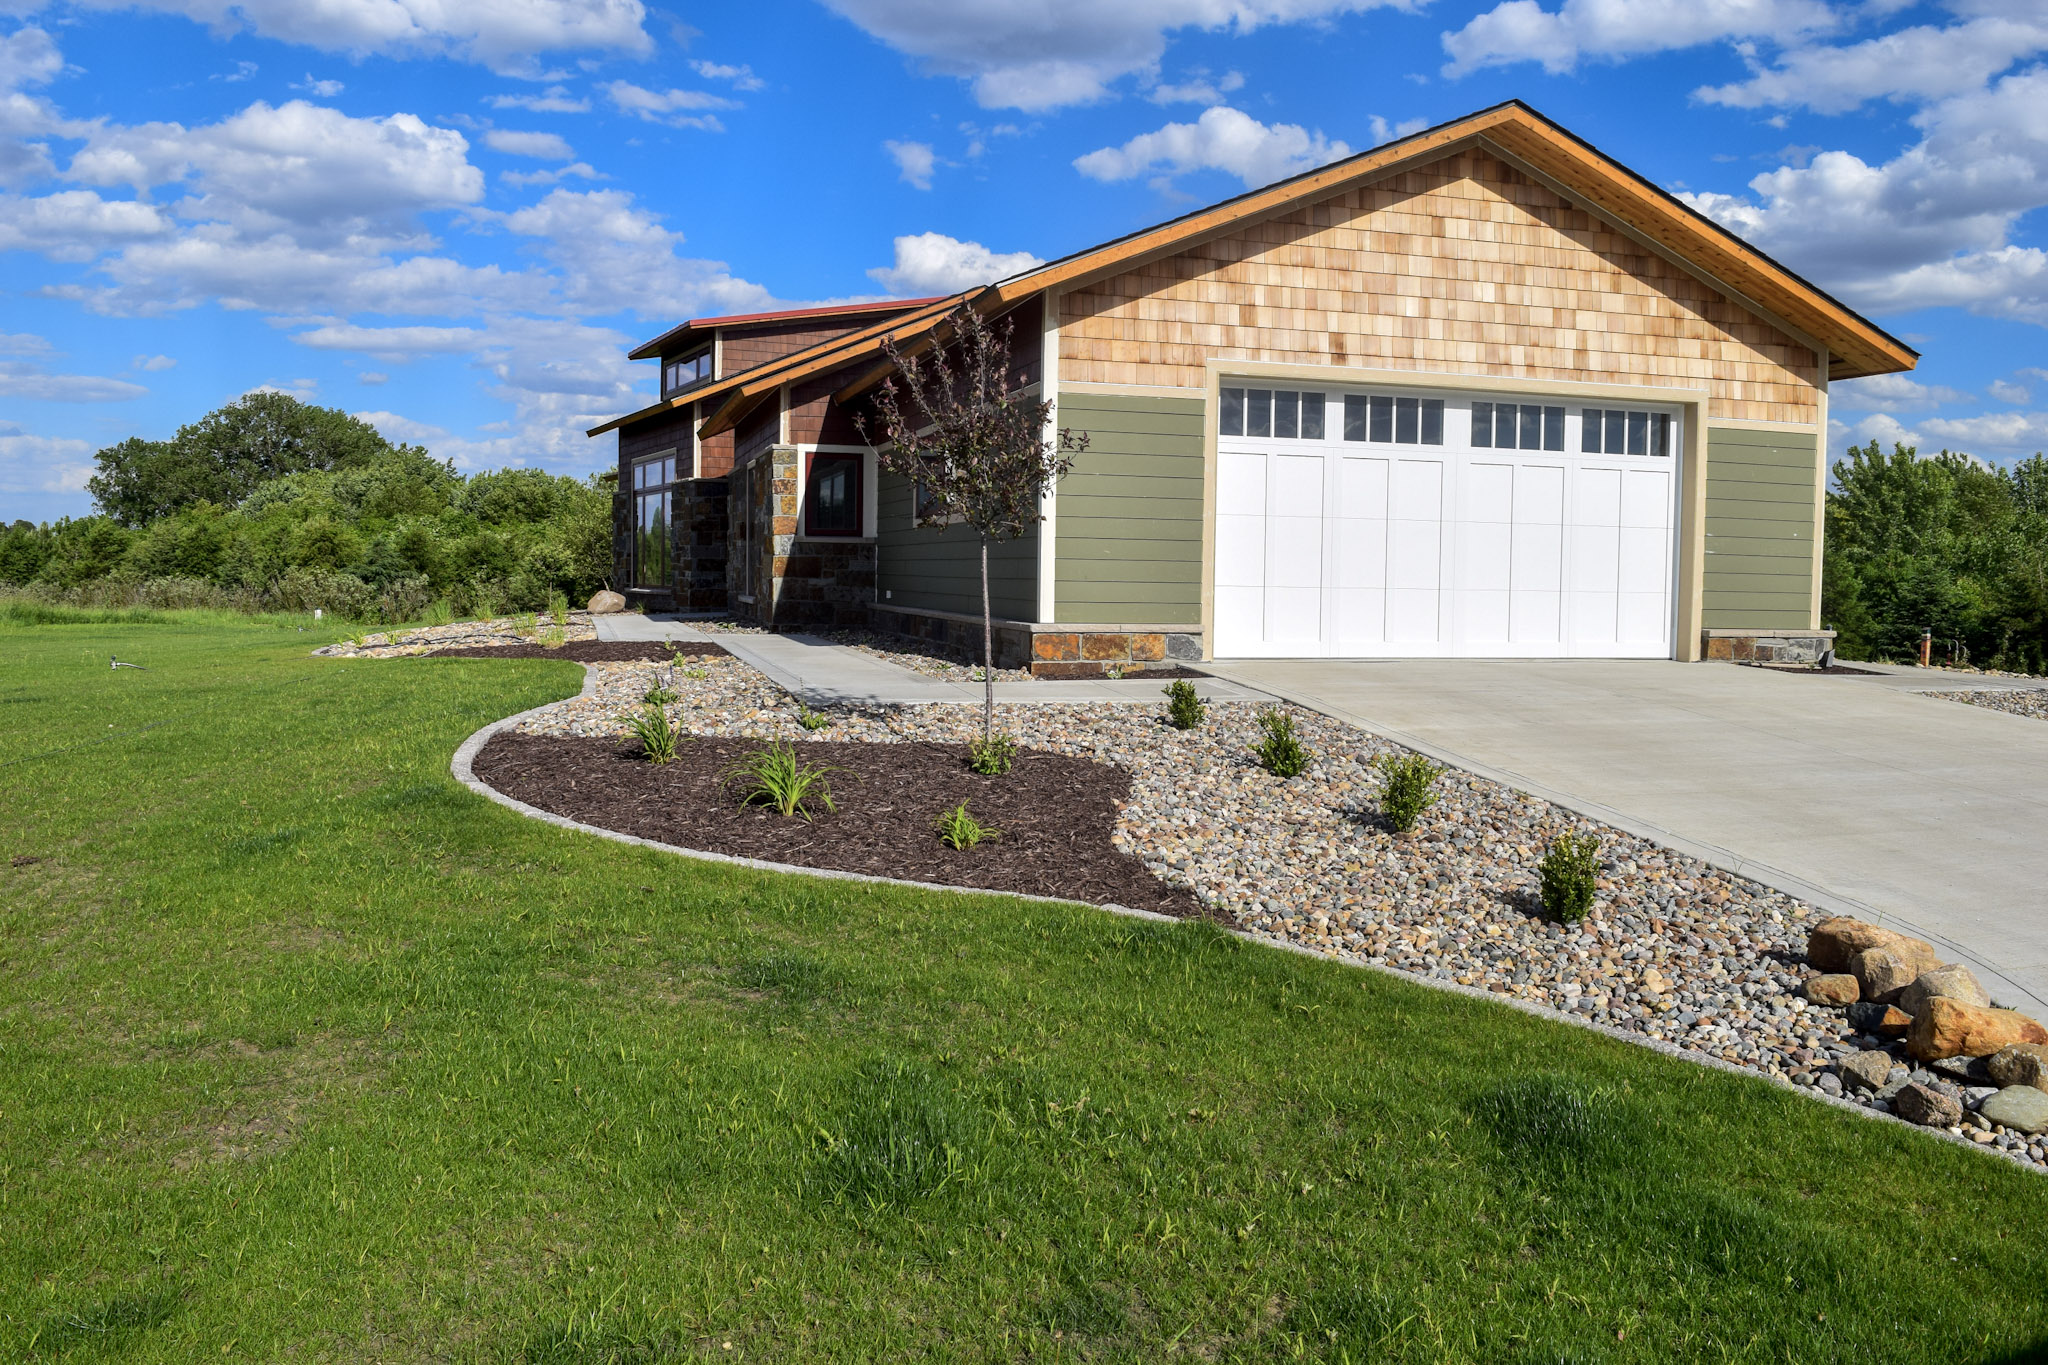 NEW HOME LANDSCAPING -